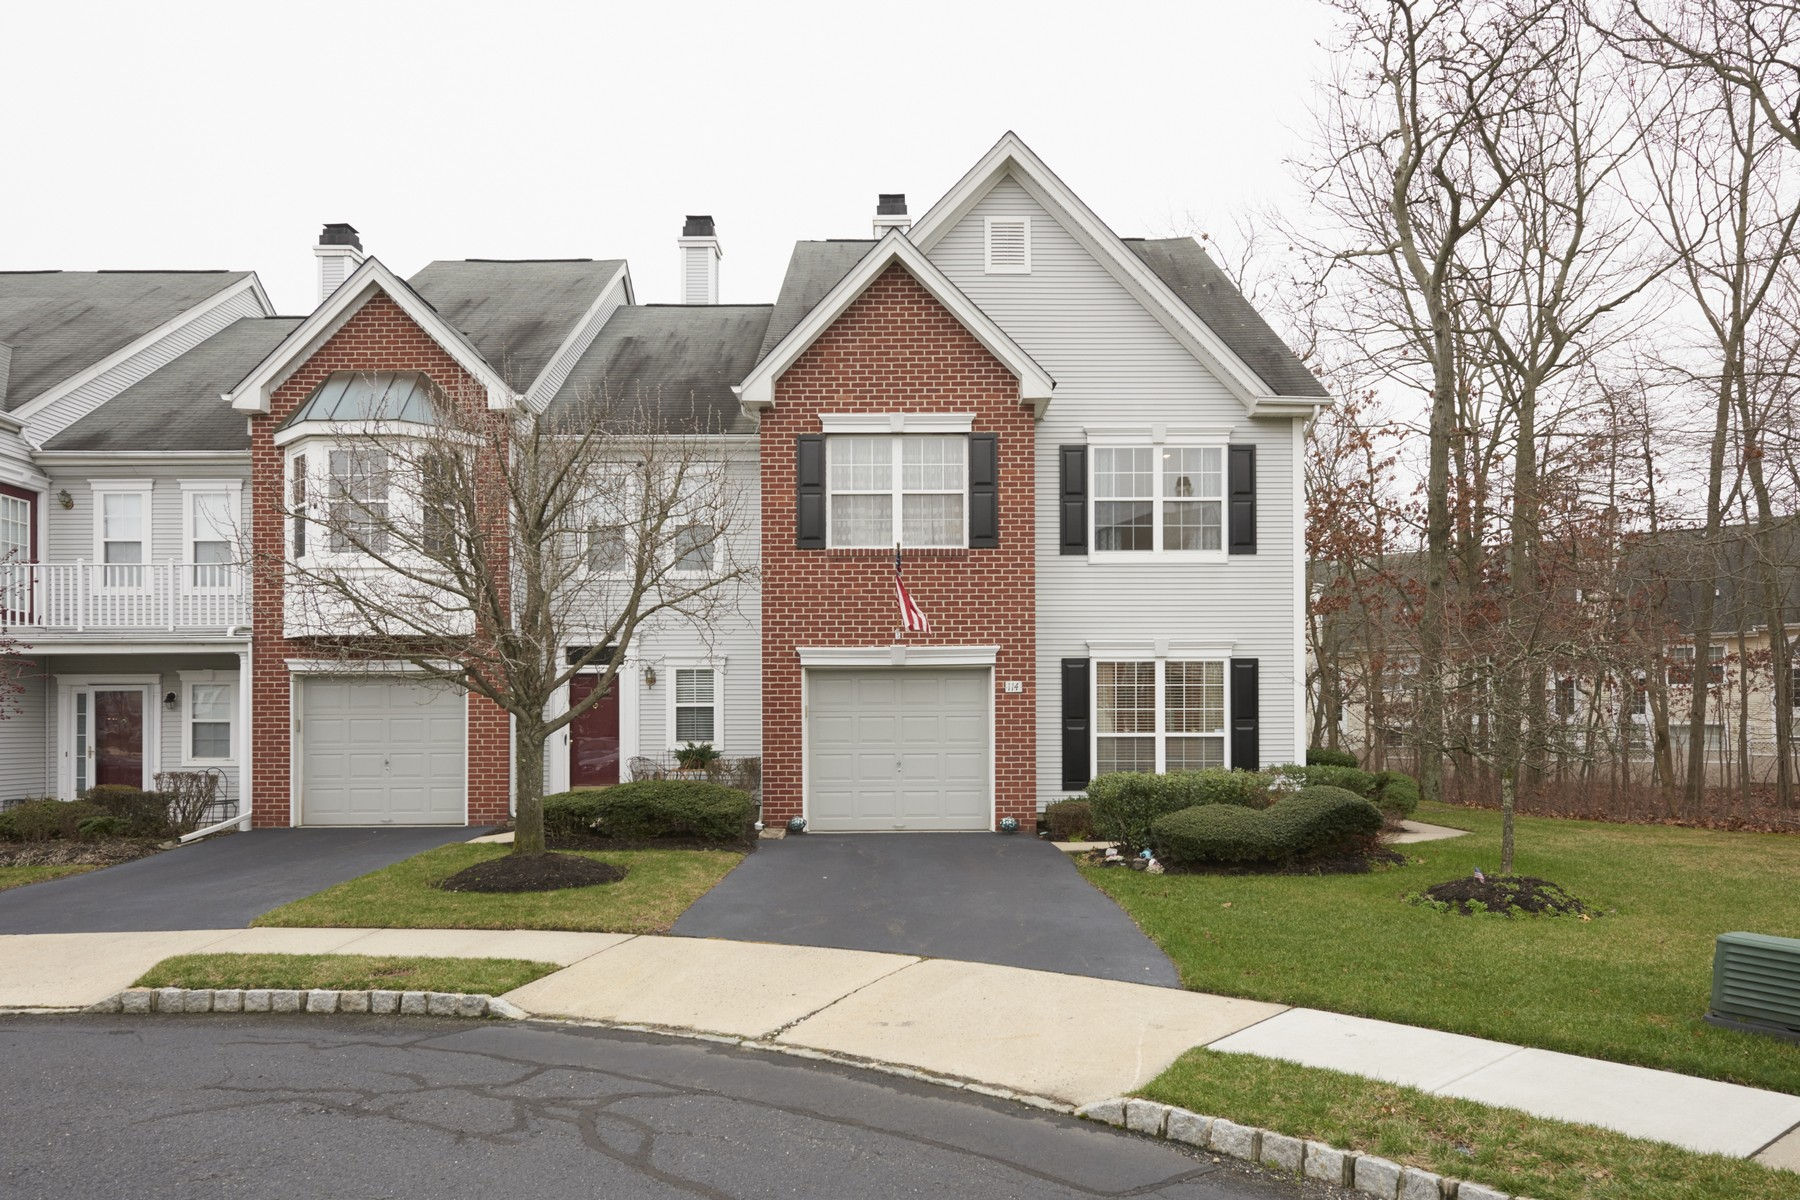 Townhouse for Sale at Hidden Meadows Townhouse 114 Tanya Circle Ocean, New Jersey 07712 United States